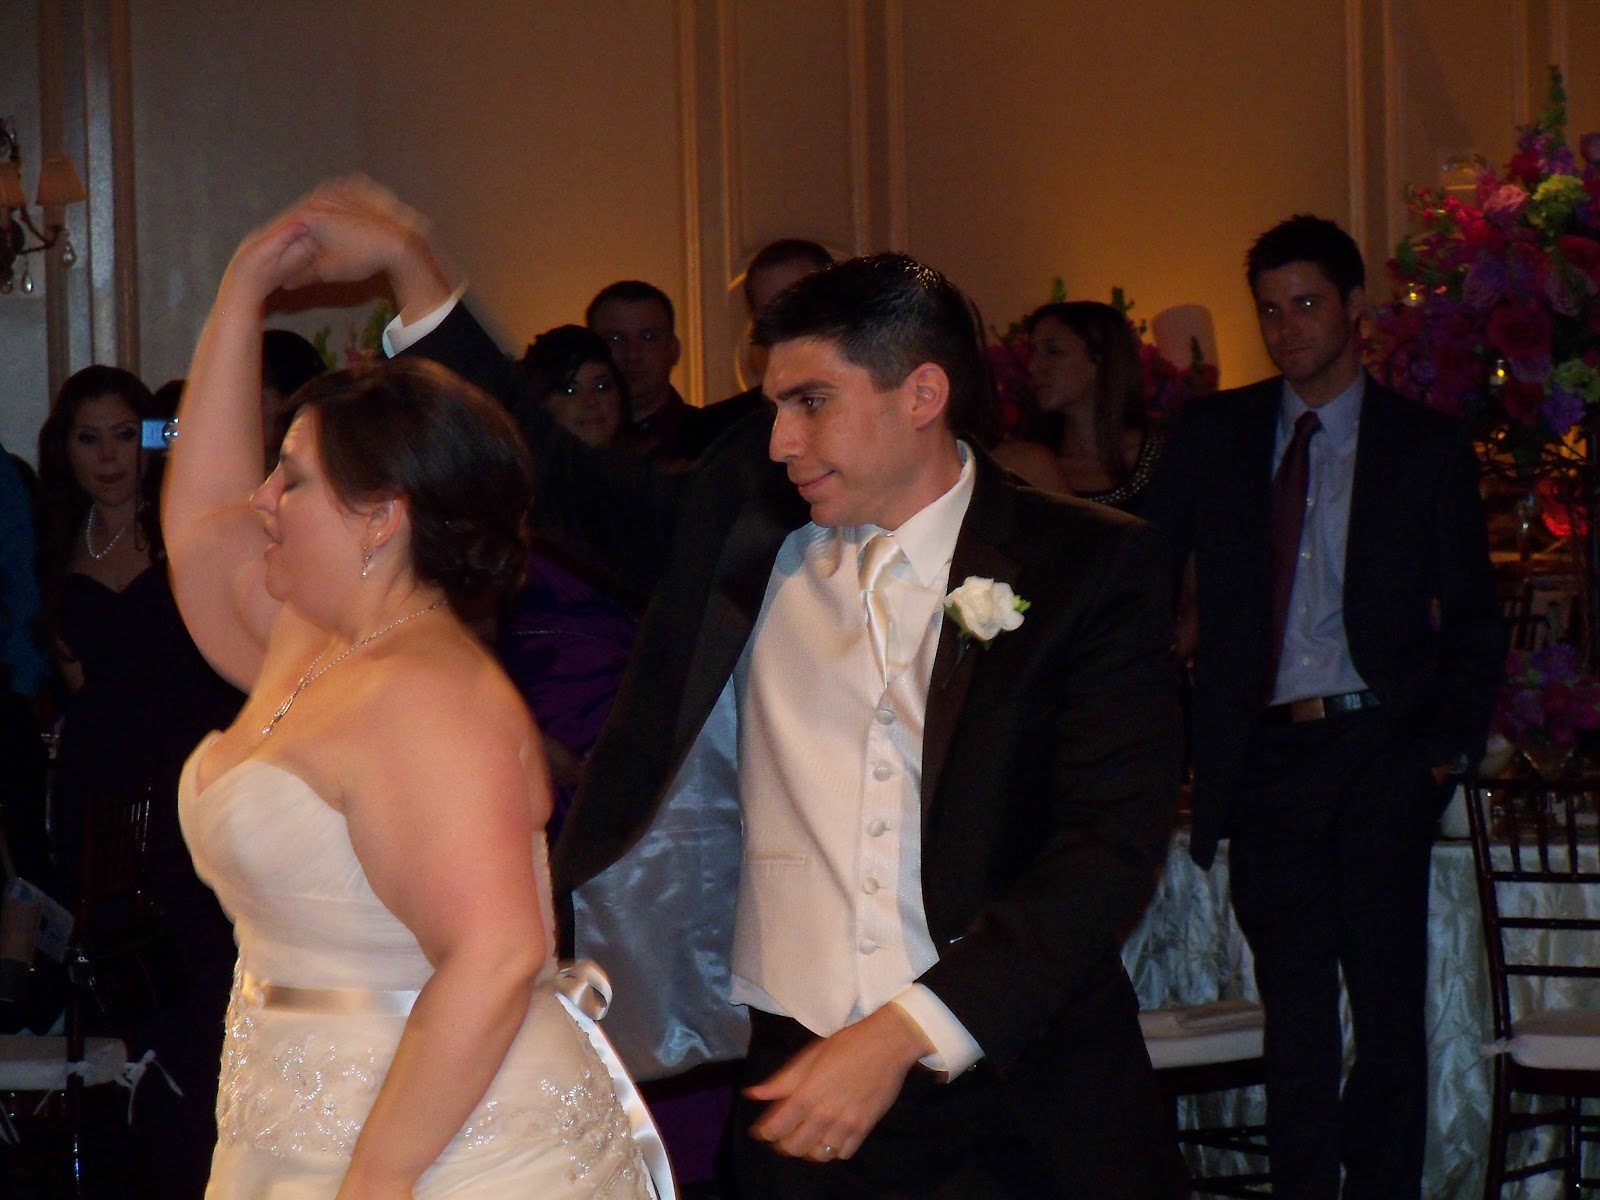 Megan Neal and Mark Suarez wedding - 100_8355.JPG